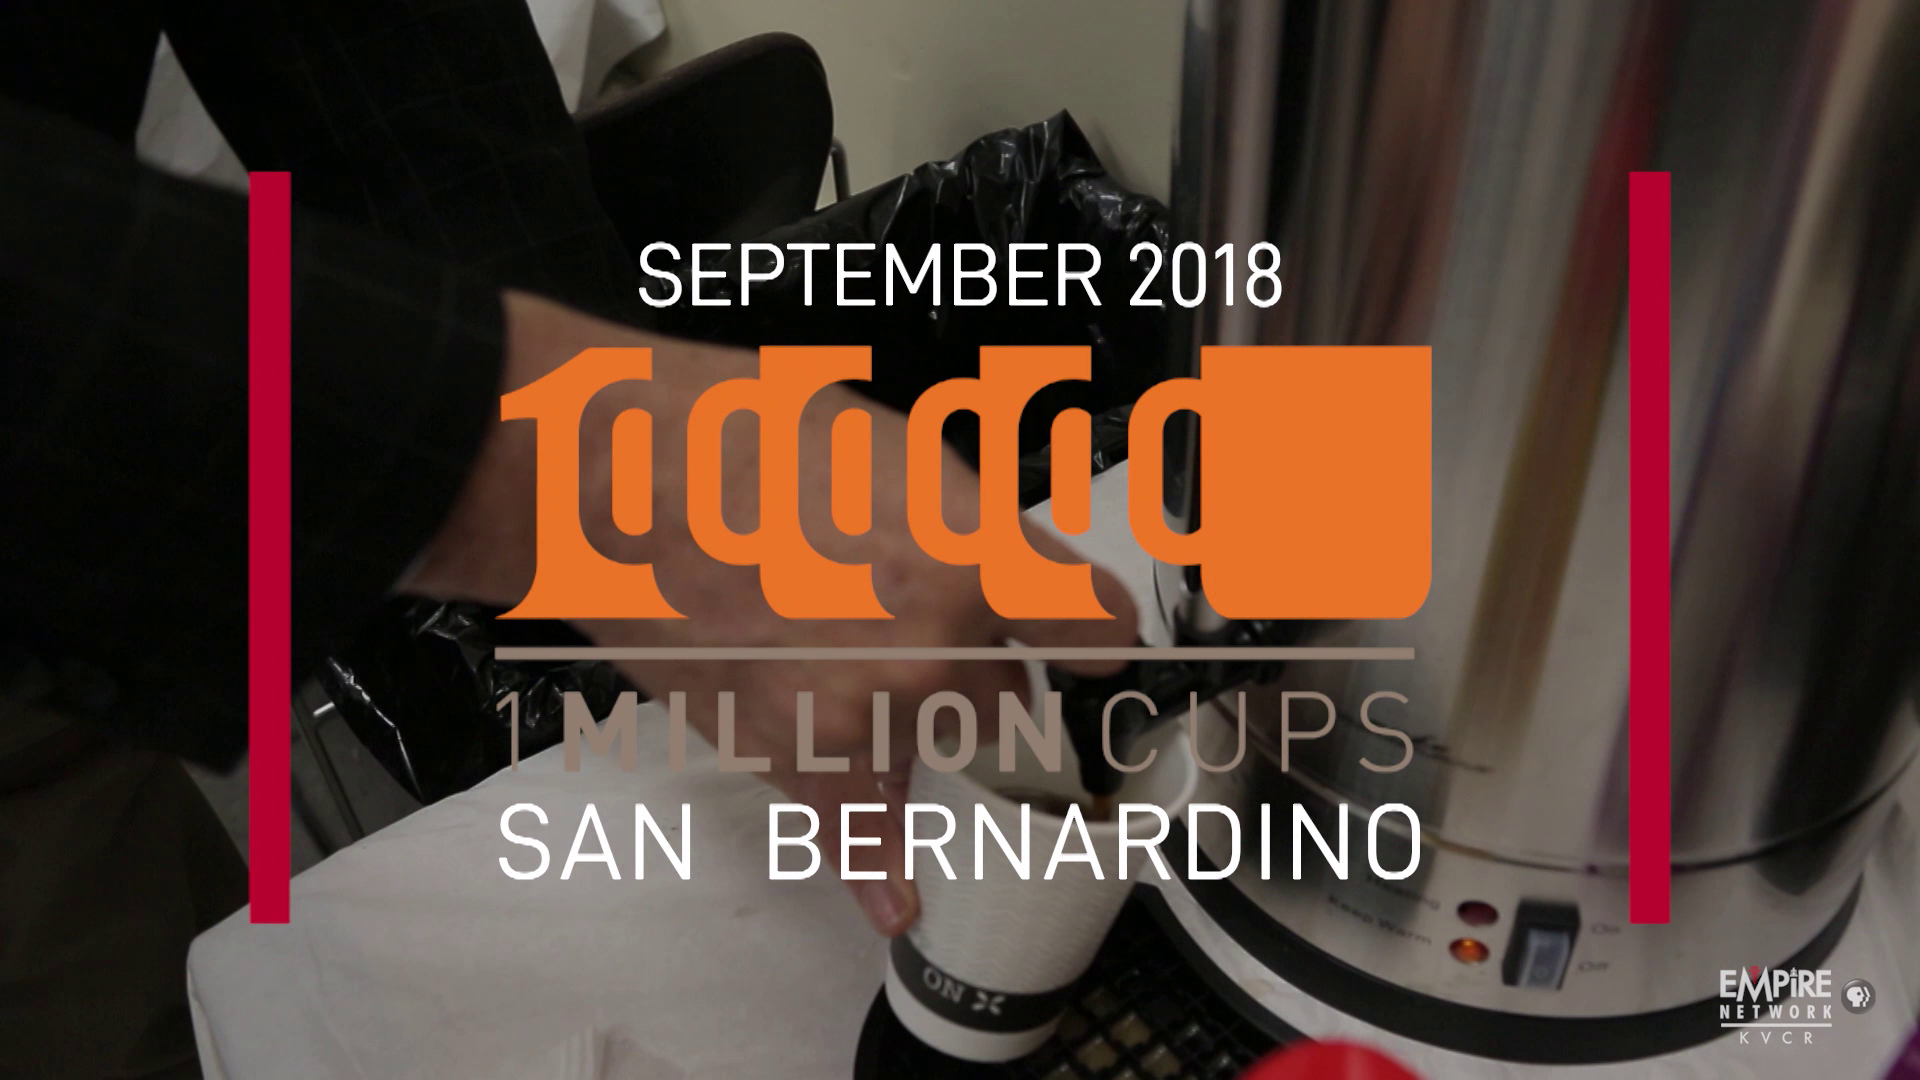 One Million Cups September 2018